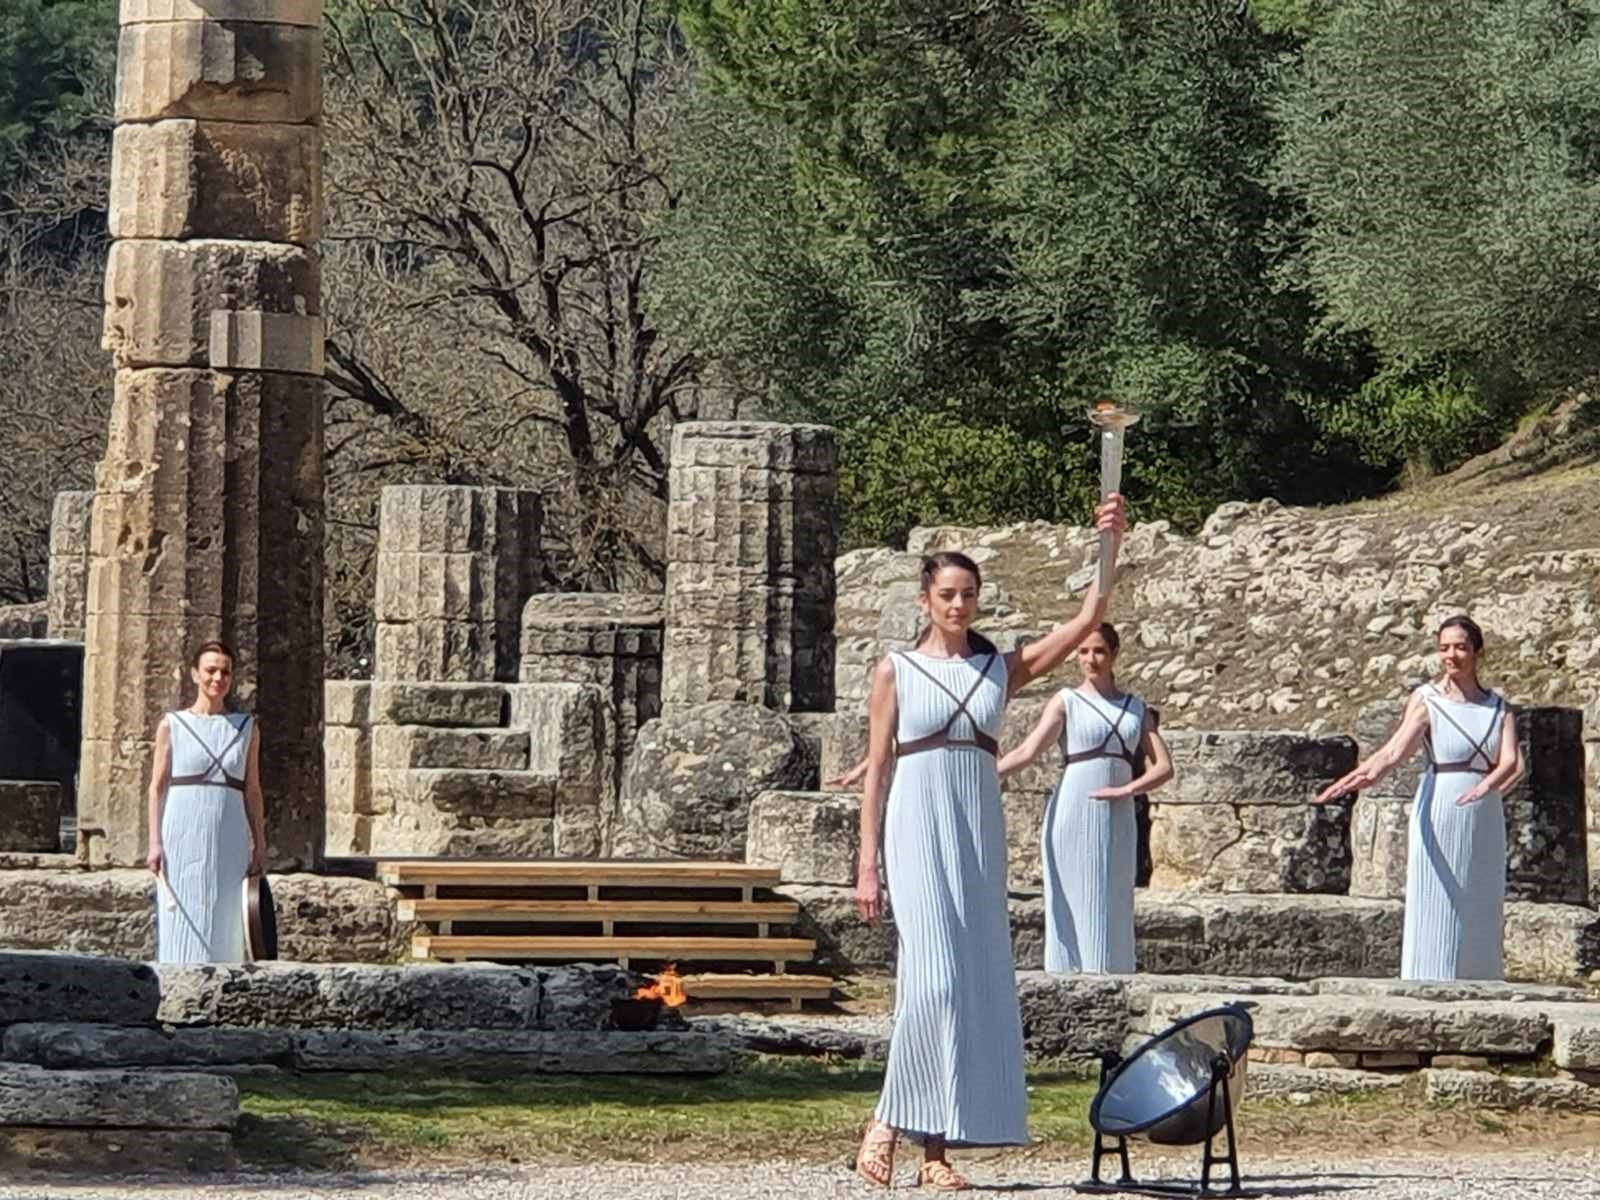 The final rehearsal took place in Ancient Olympia ahead of Thursday's Flame-lighting Ceremony ©Hellenic Olympic Committee